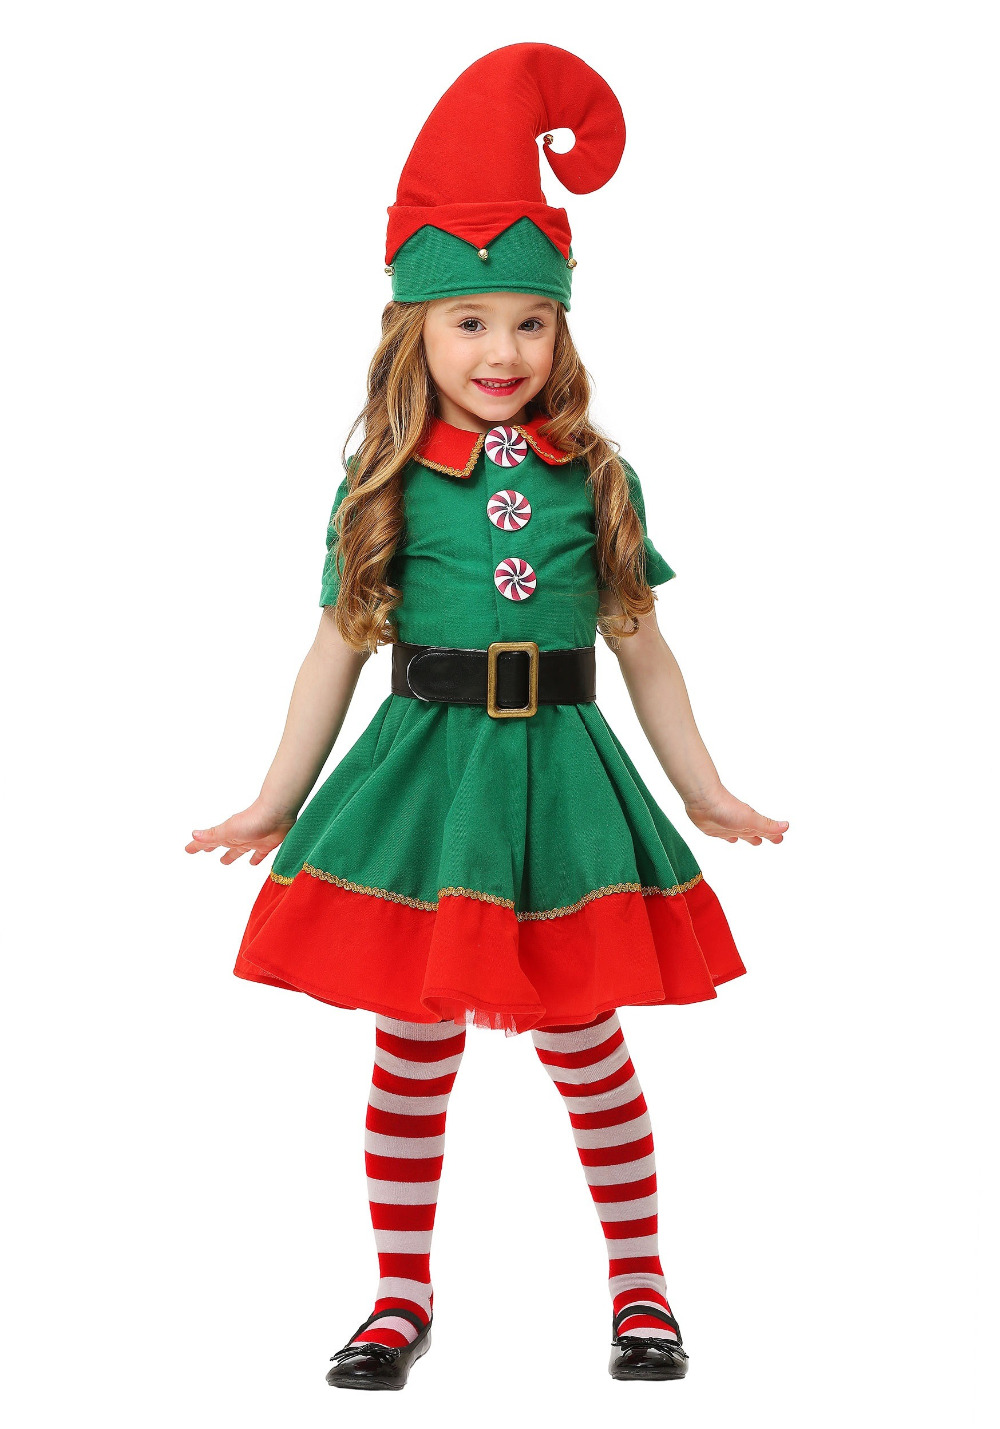 IREK hot toddler girls holiday elf Christmas Costume new Halloween cosplay costume luruxy top quality performance clothing-in Girls Costumes from Novelty ...  sc 1 st  AliExpress.com & IREK hot toddler girls holiday elf Christmas Costume new Halloween ...